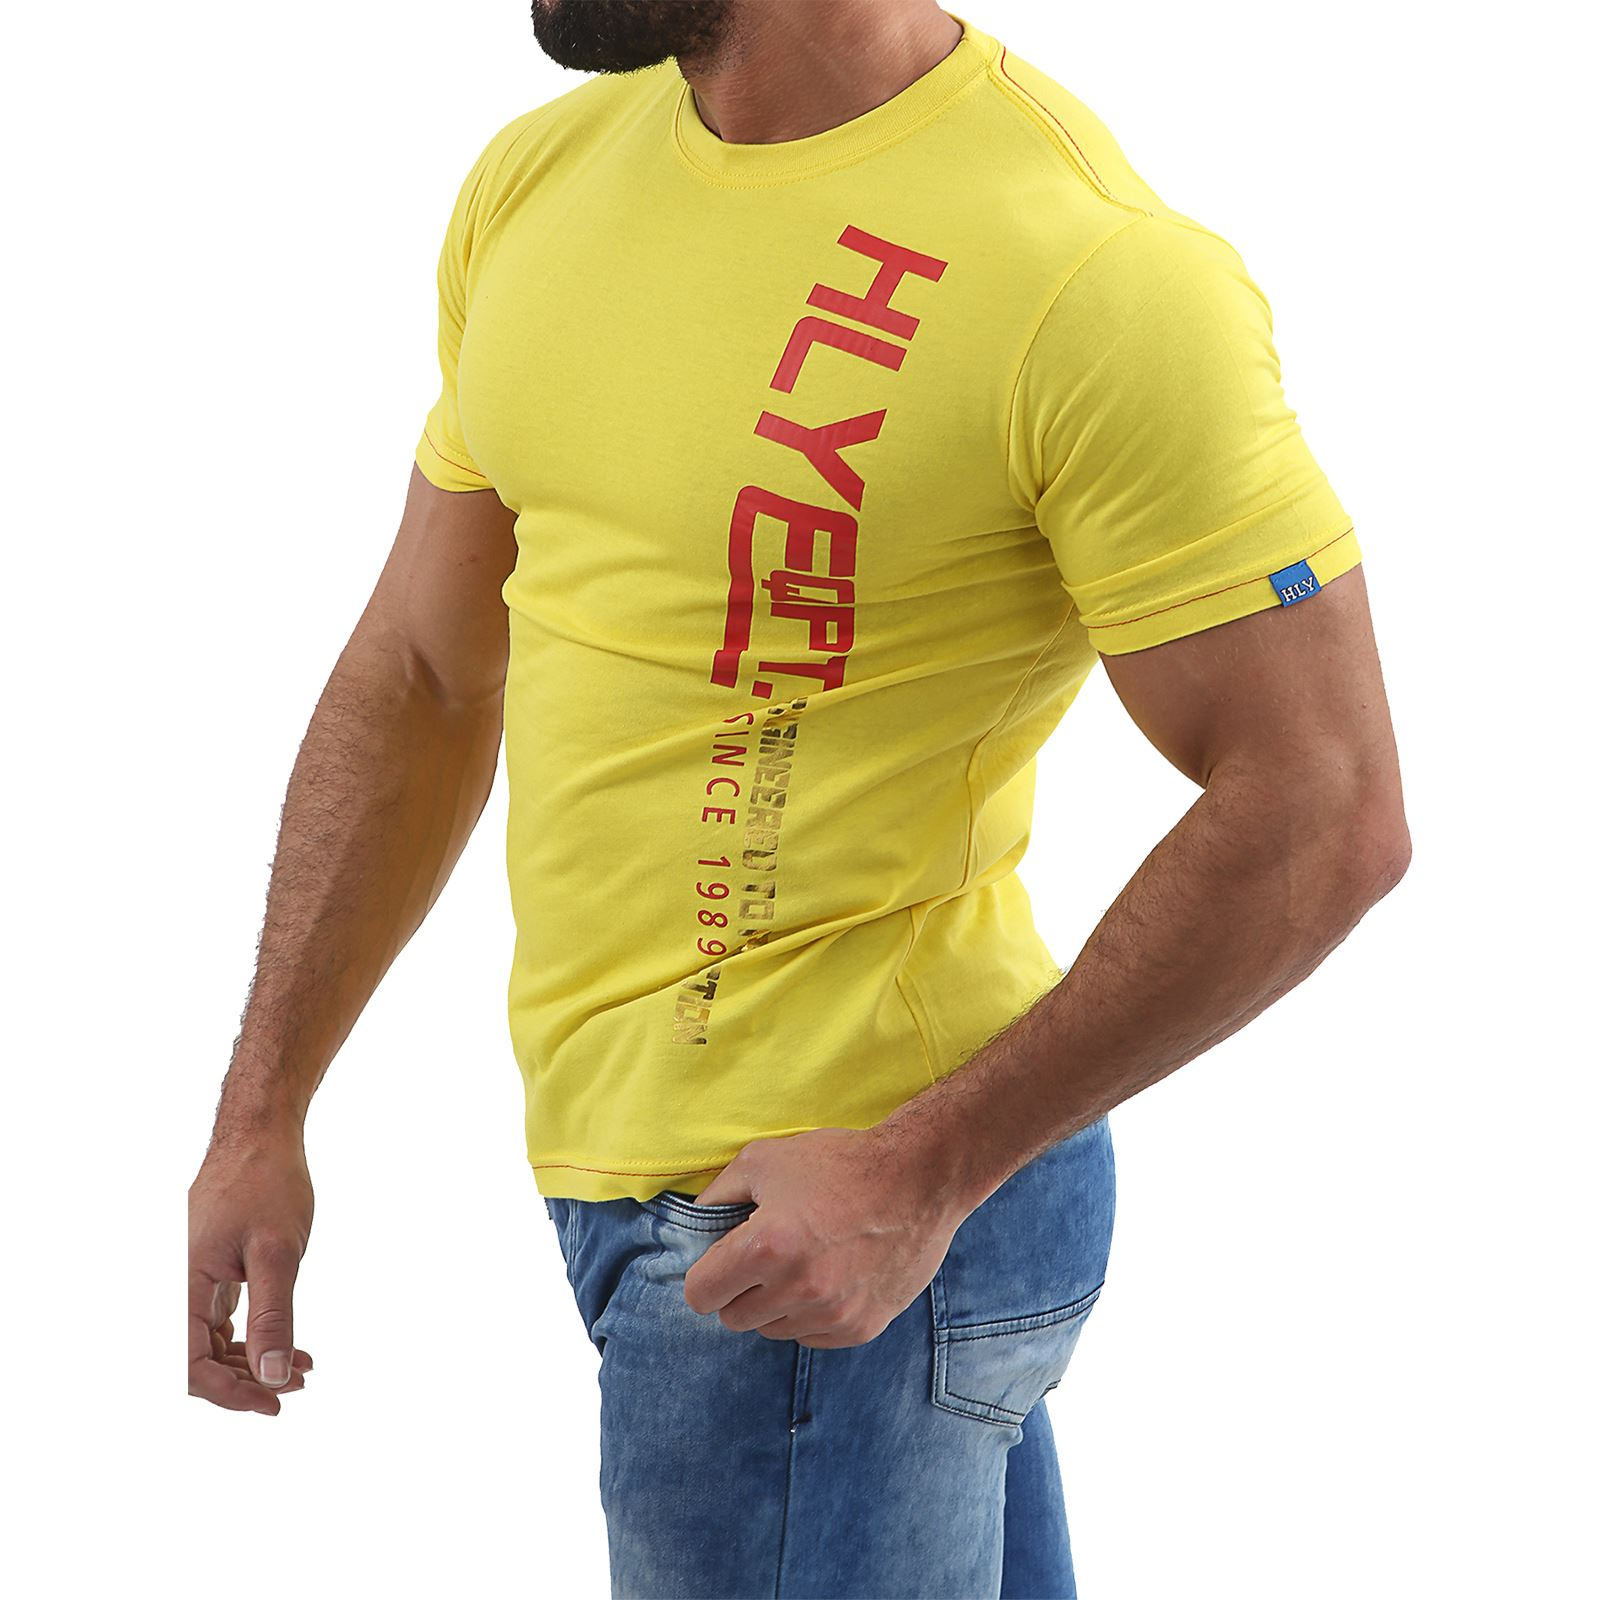 Mens-HLY-EQPT-Printed-T-Shirt-100-Cotton-Gym-Athletic-Training-Tee-Top-Summer thumbnail 18